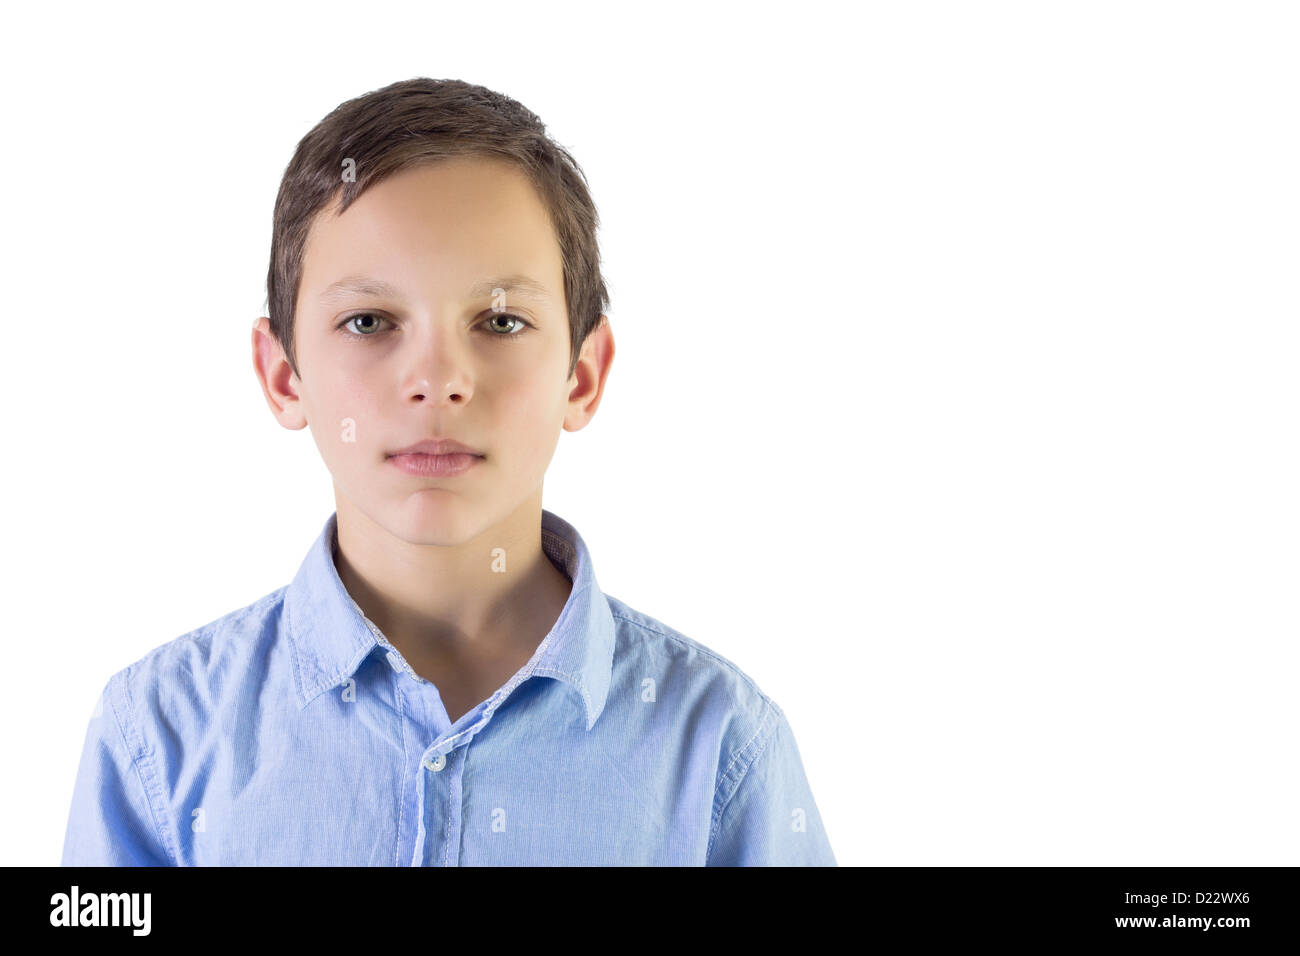 Portrait of a real kid. - Stock Image